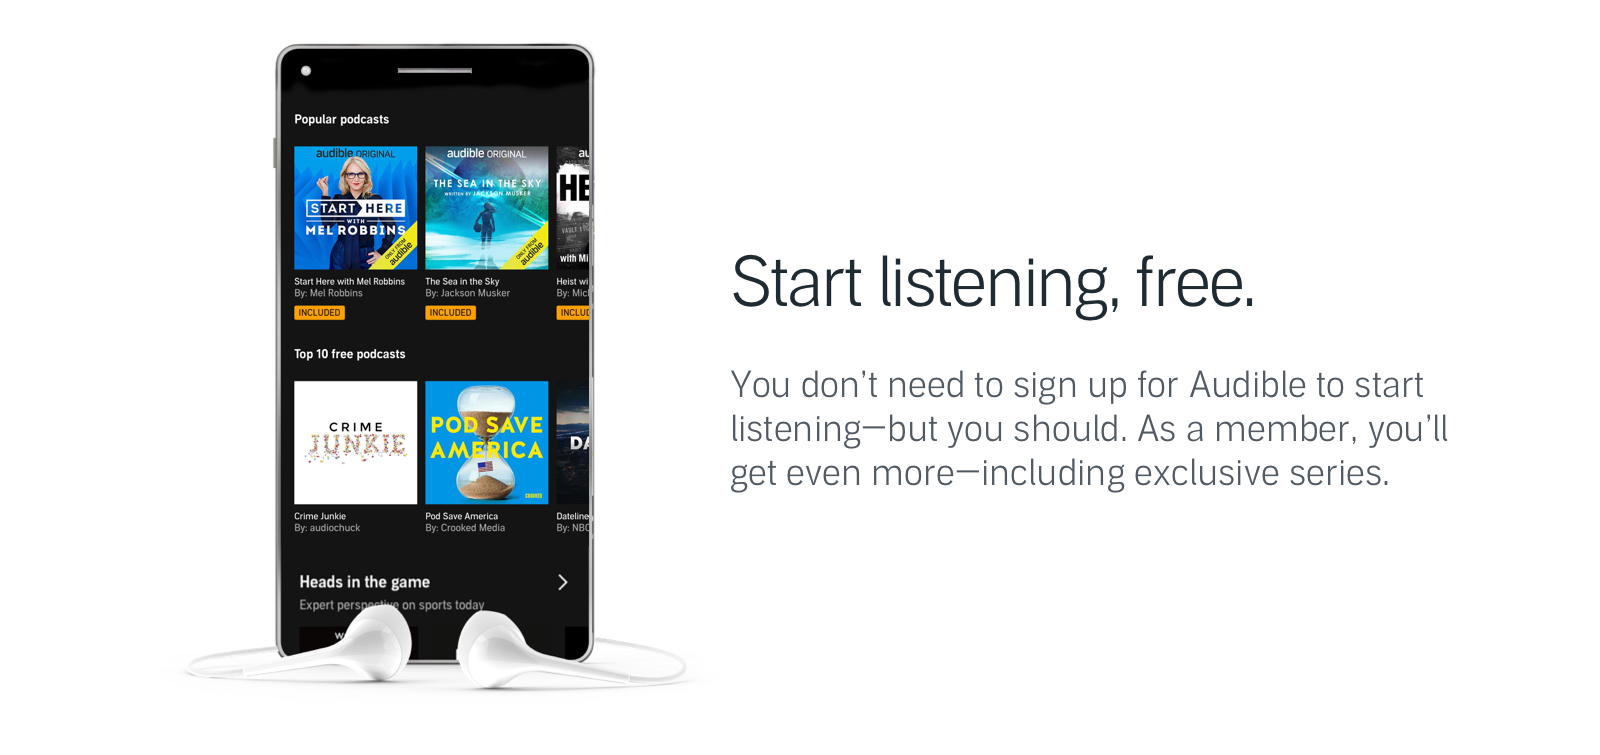 Try Audible Plus free. You don't need to sign up for Audible to start listening—but you should. As a member, you'll get even more—including exclusive series.